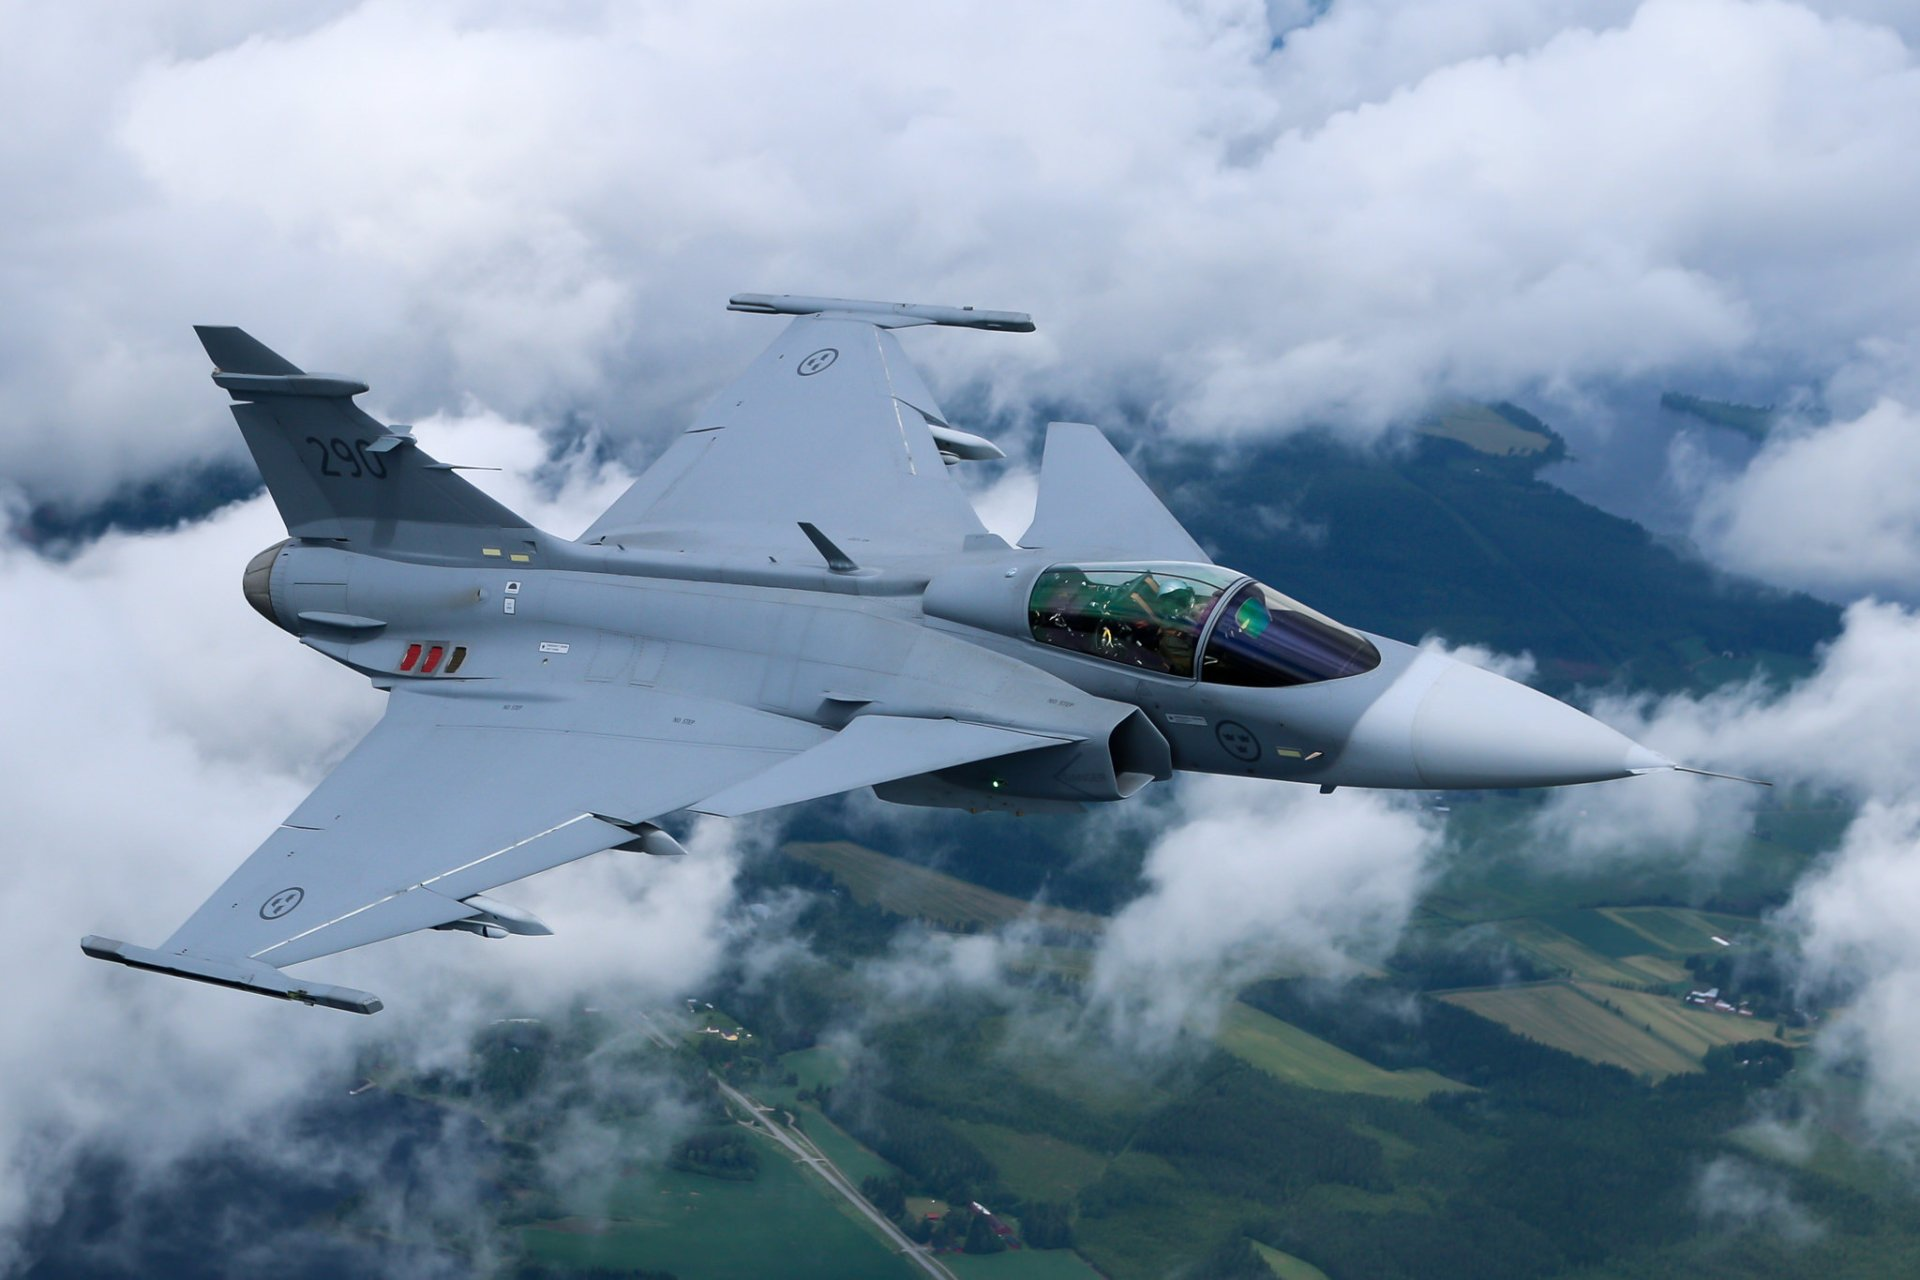 Military - Saab JAS 39 Gripen  Jet Fighter Aircraft Warplane Wallpaper